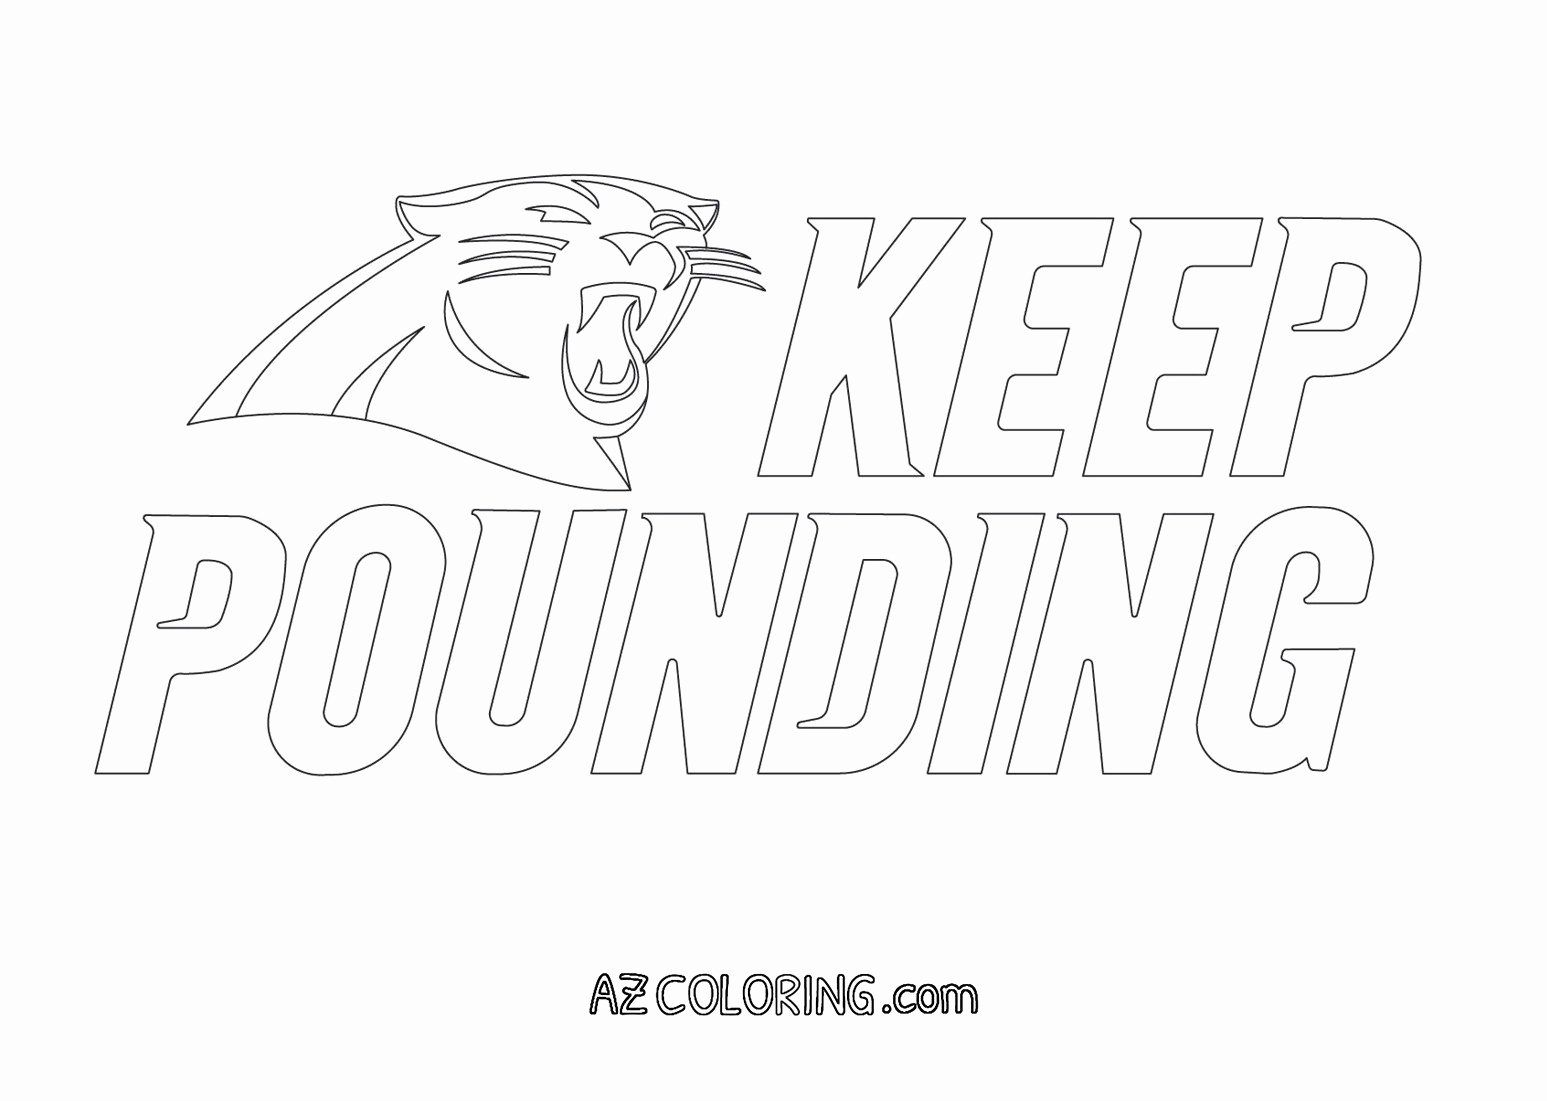 Carolina Panthers Coloring Page Lovely Carolina Panthers Coloring Sheets Carolina Panthers Logo Carolina Panthers Coloring Pages